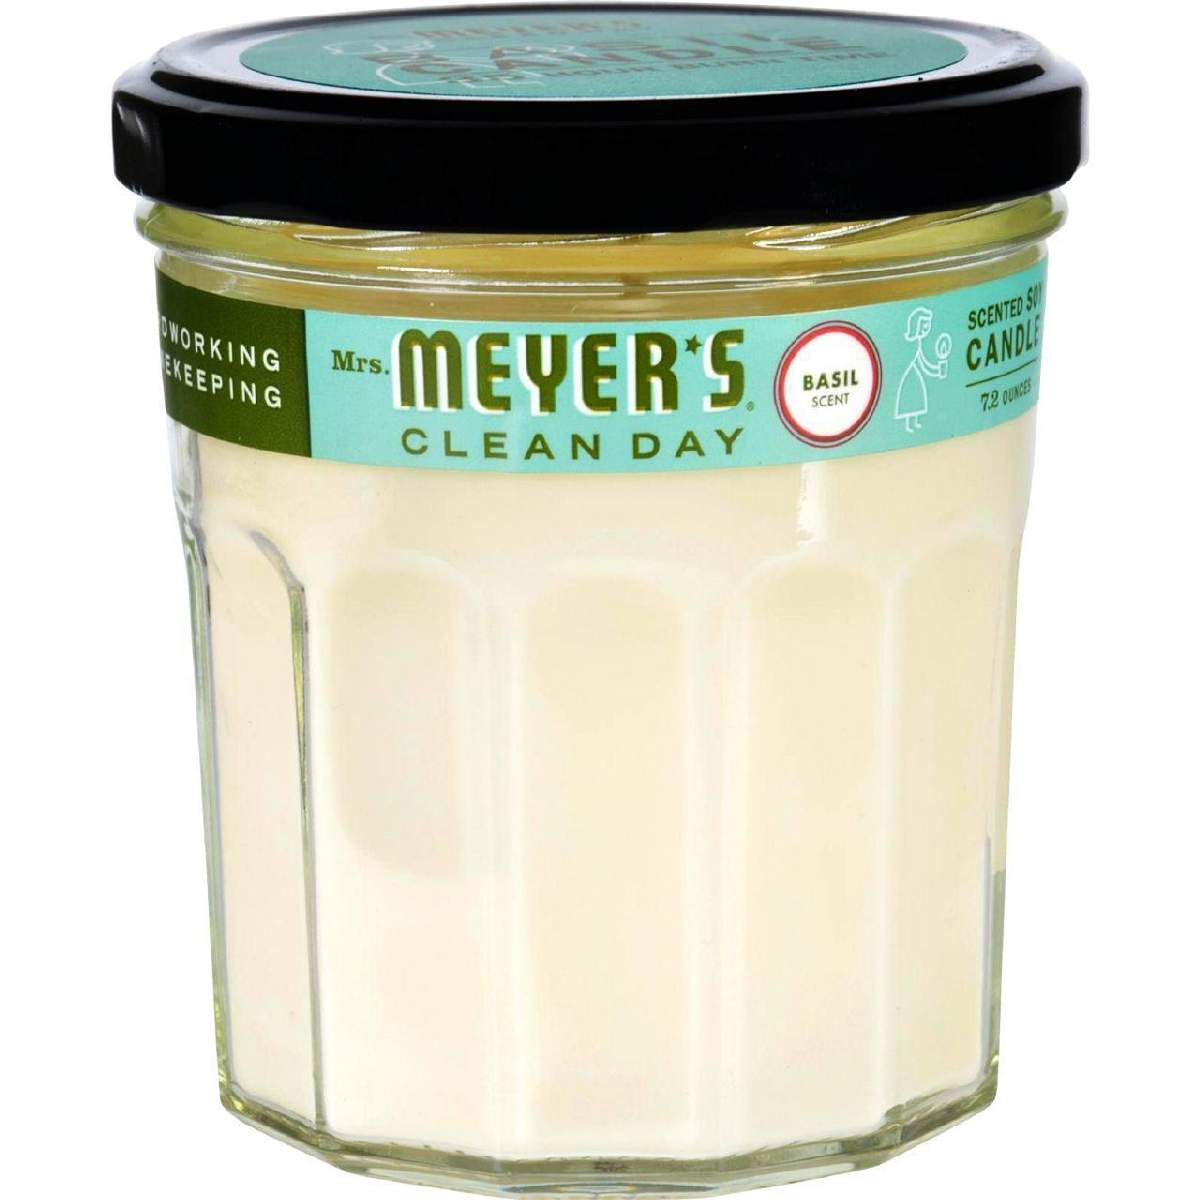 Mrs. Meyers Soy Candle - Basil - 7.2 Oz - Case Of 6